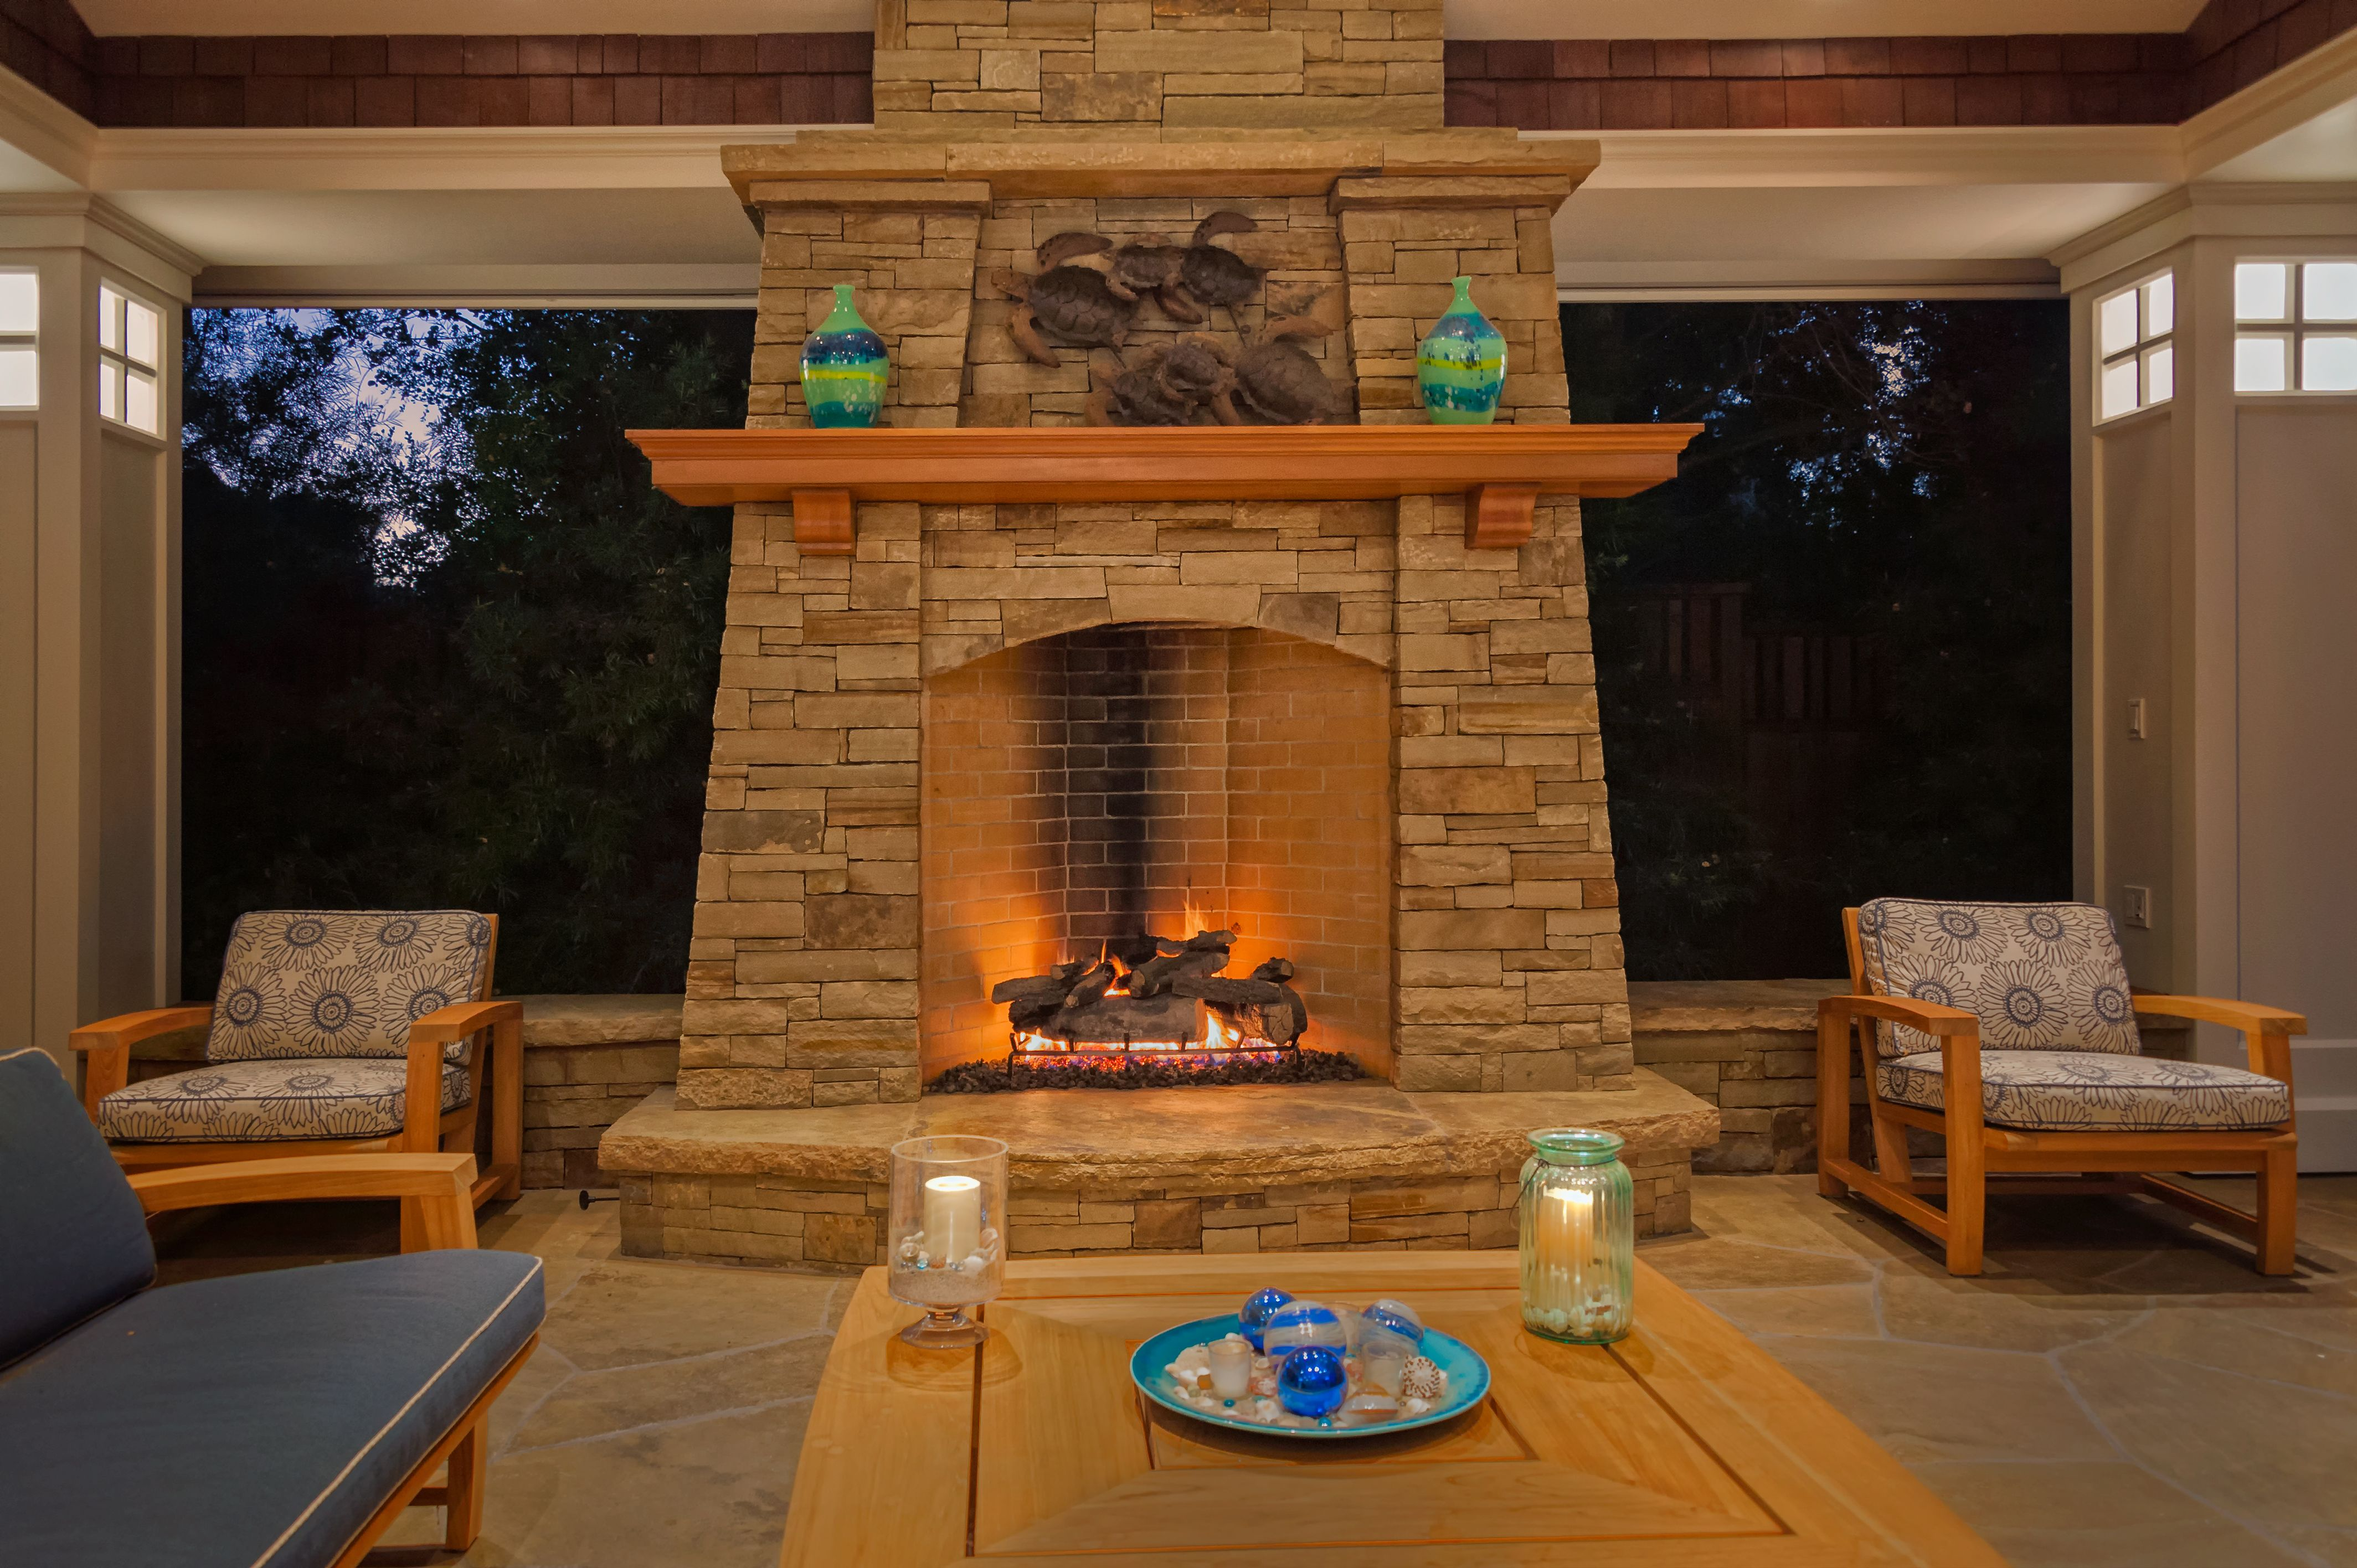 craftsman style fireplace fireplaces and firepits. Black Bedroom Furniture Sets. Home Design Ideas